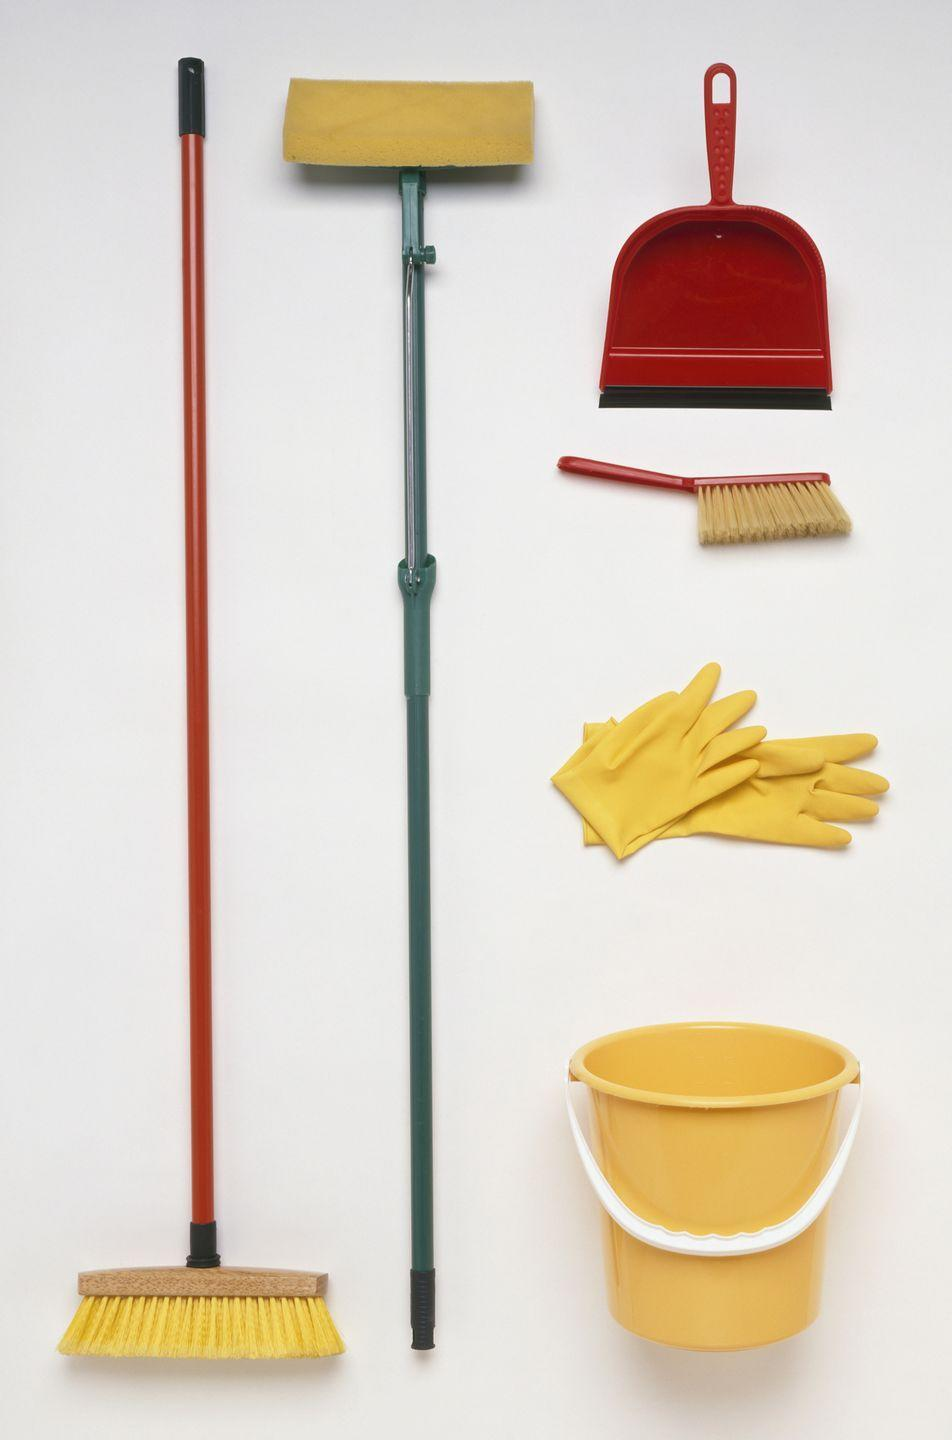 """<p>Stock up on these cleaning essentials for just <a href=""""https://www.dollartree.com/Cleaning-Storage/cleaning-tools/Mops-Brooms-Dusters/1470c508c1507/index.cat"""" rel=""""nofollow noopener"""" target=""""_blank"""" data-ylk=""""slk:$1 each at stores like Dollar Tree"""" class=""""link rapid-noclick-resp"""">$1 each at stores like Dollar Tree</a> compared to paying up to $15 elsewhere. </p>"""